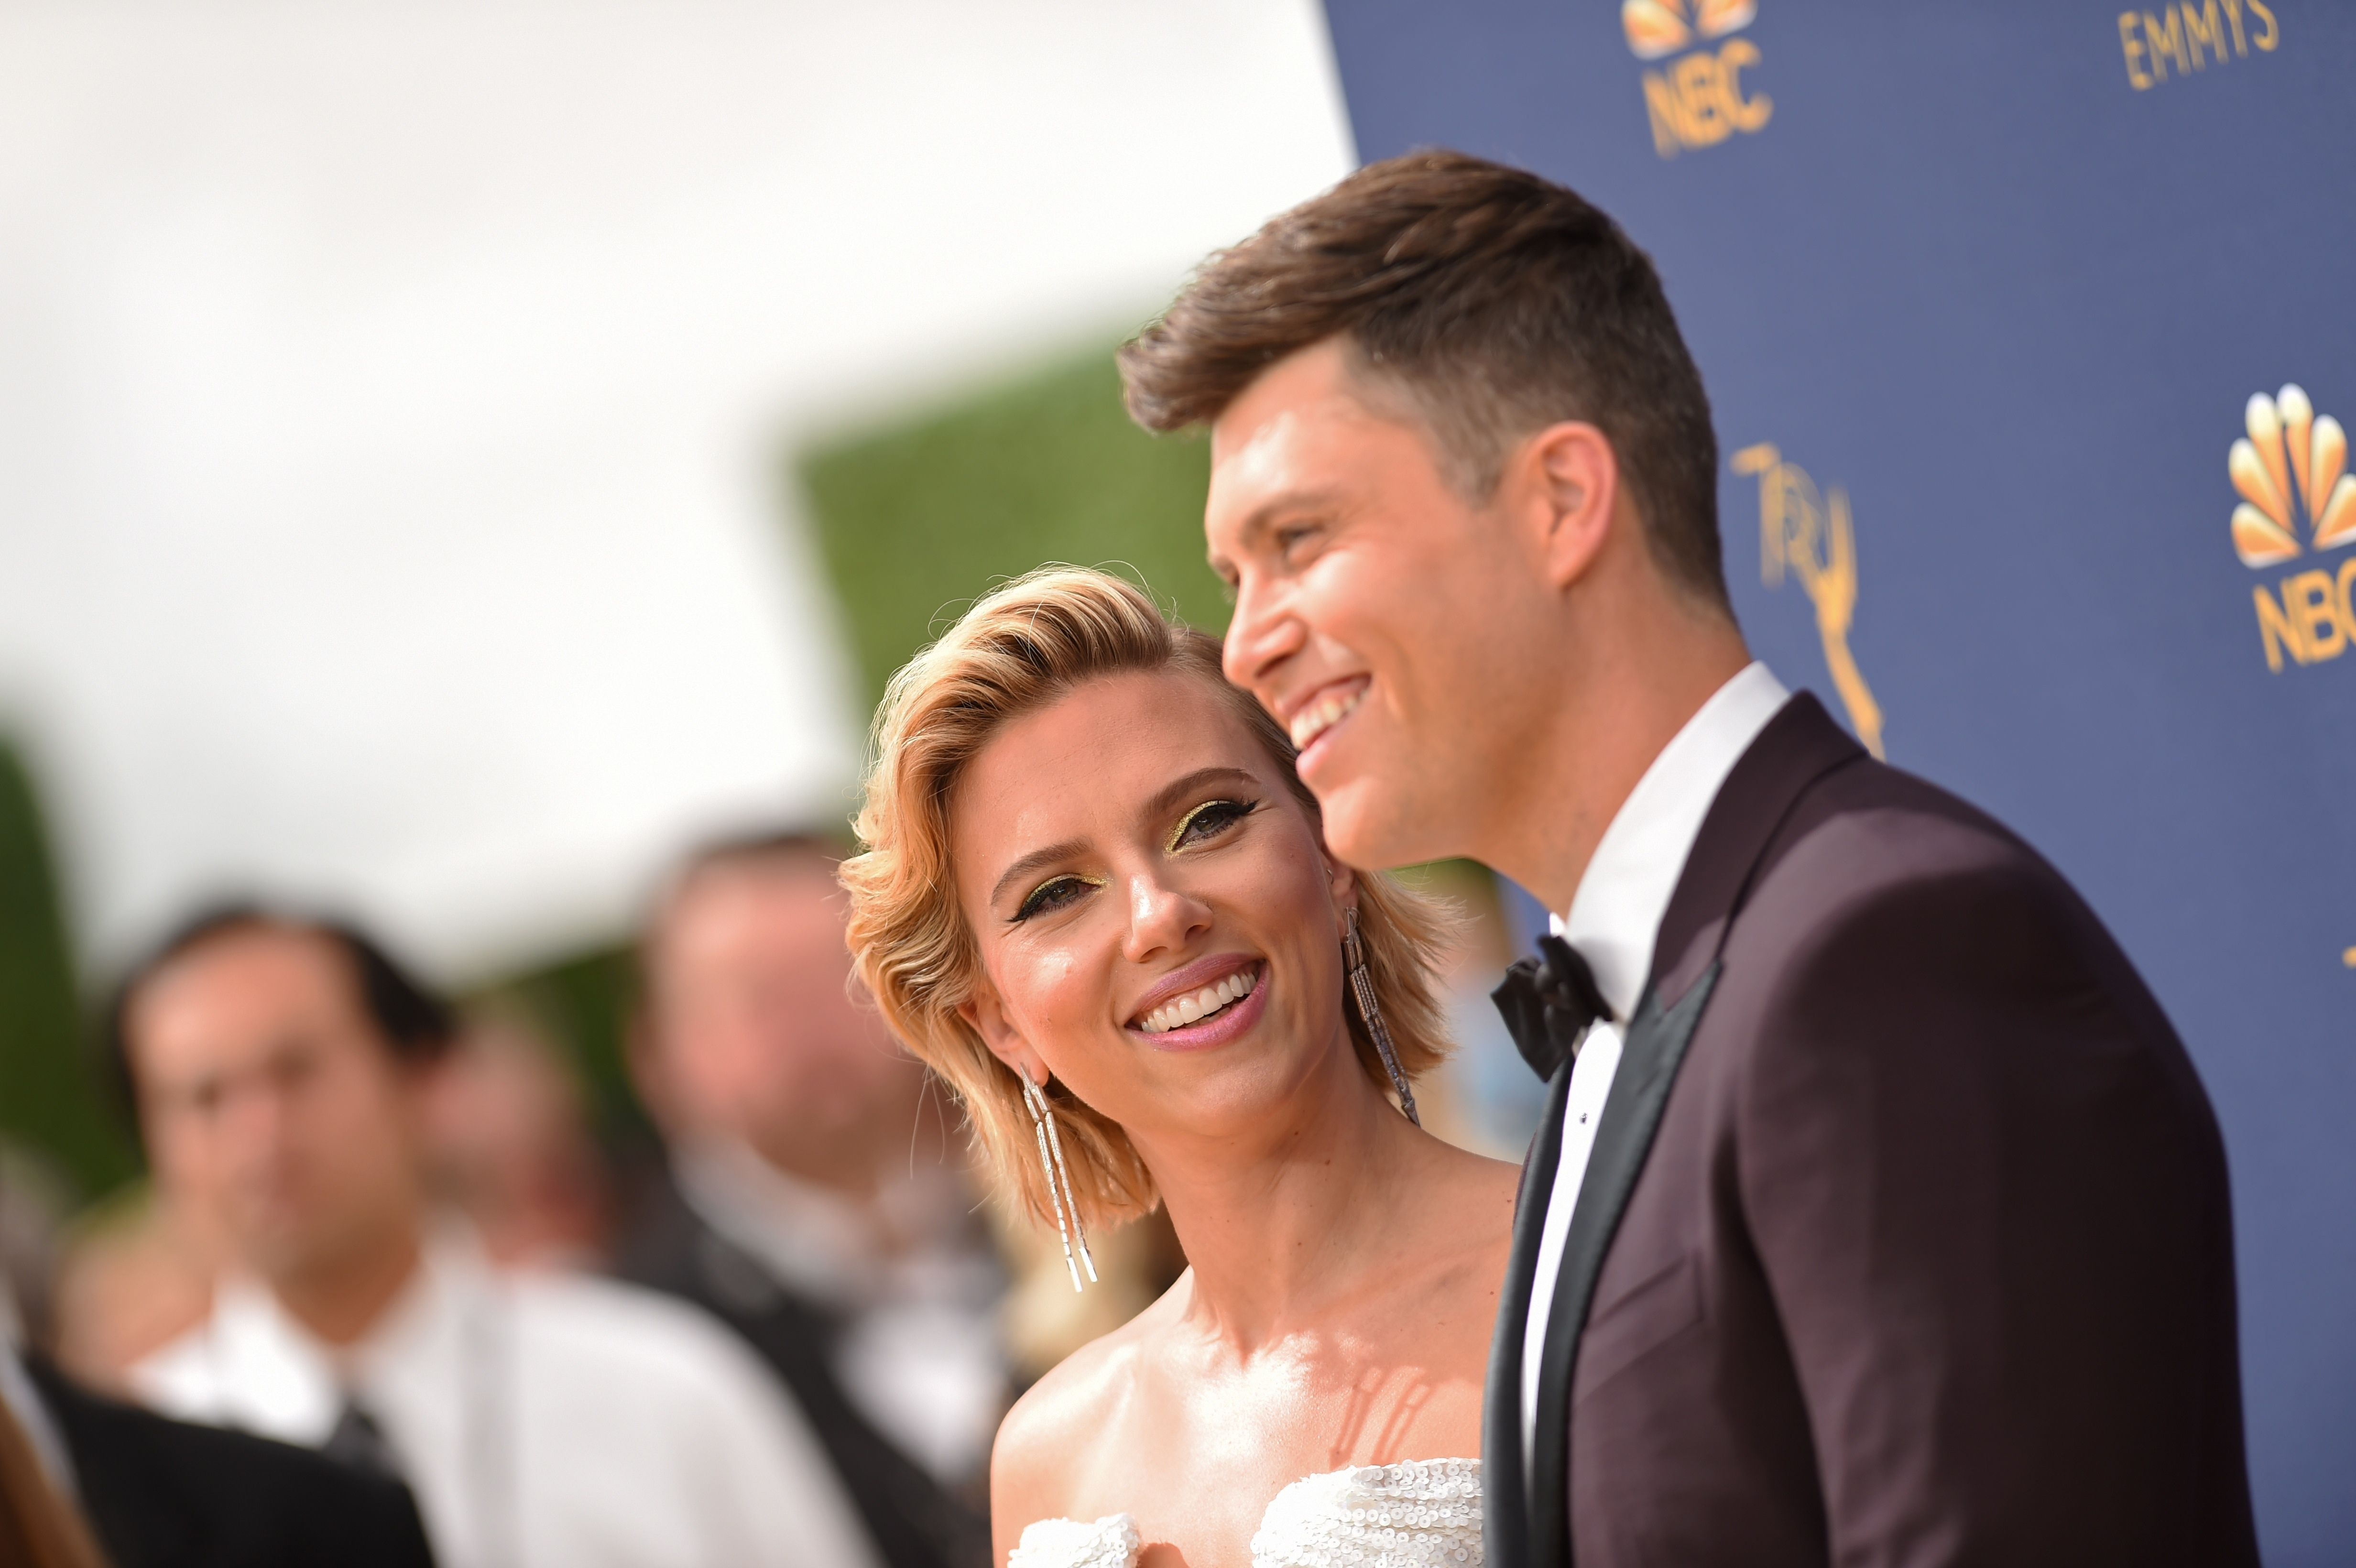 Scarlett Johansson And Her Fiance Colin Jost Met On The Set Of Snl